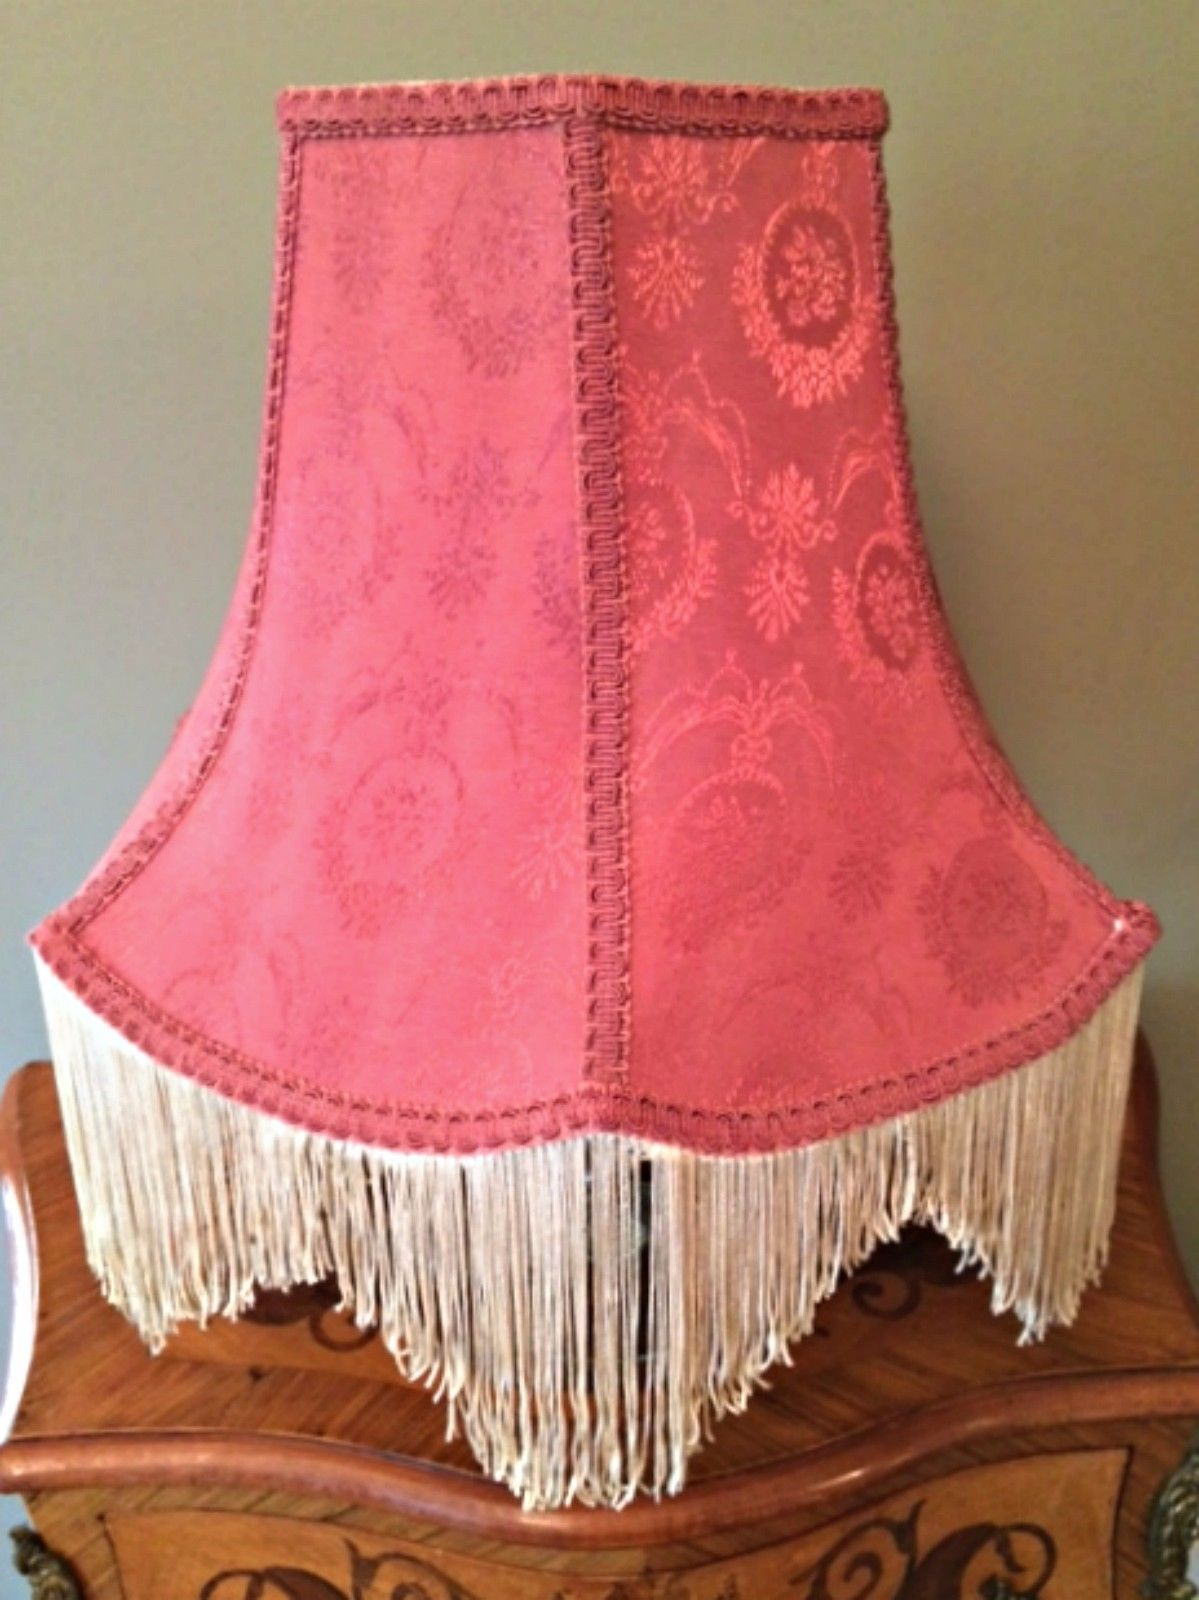 Vintage victorian lamp shade rose pink and 50 similar items vintage victorian lamp shade rose pink damask scalloped fringe 12 inches tall aloadofball Choice Image